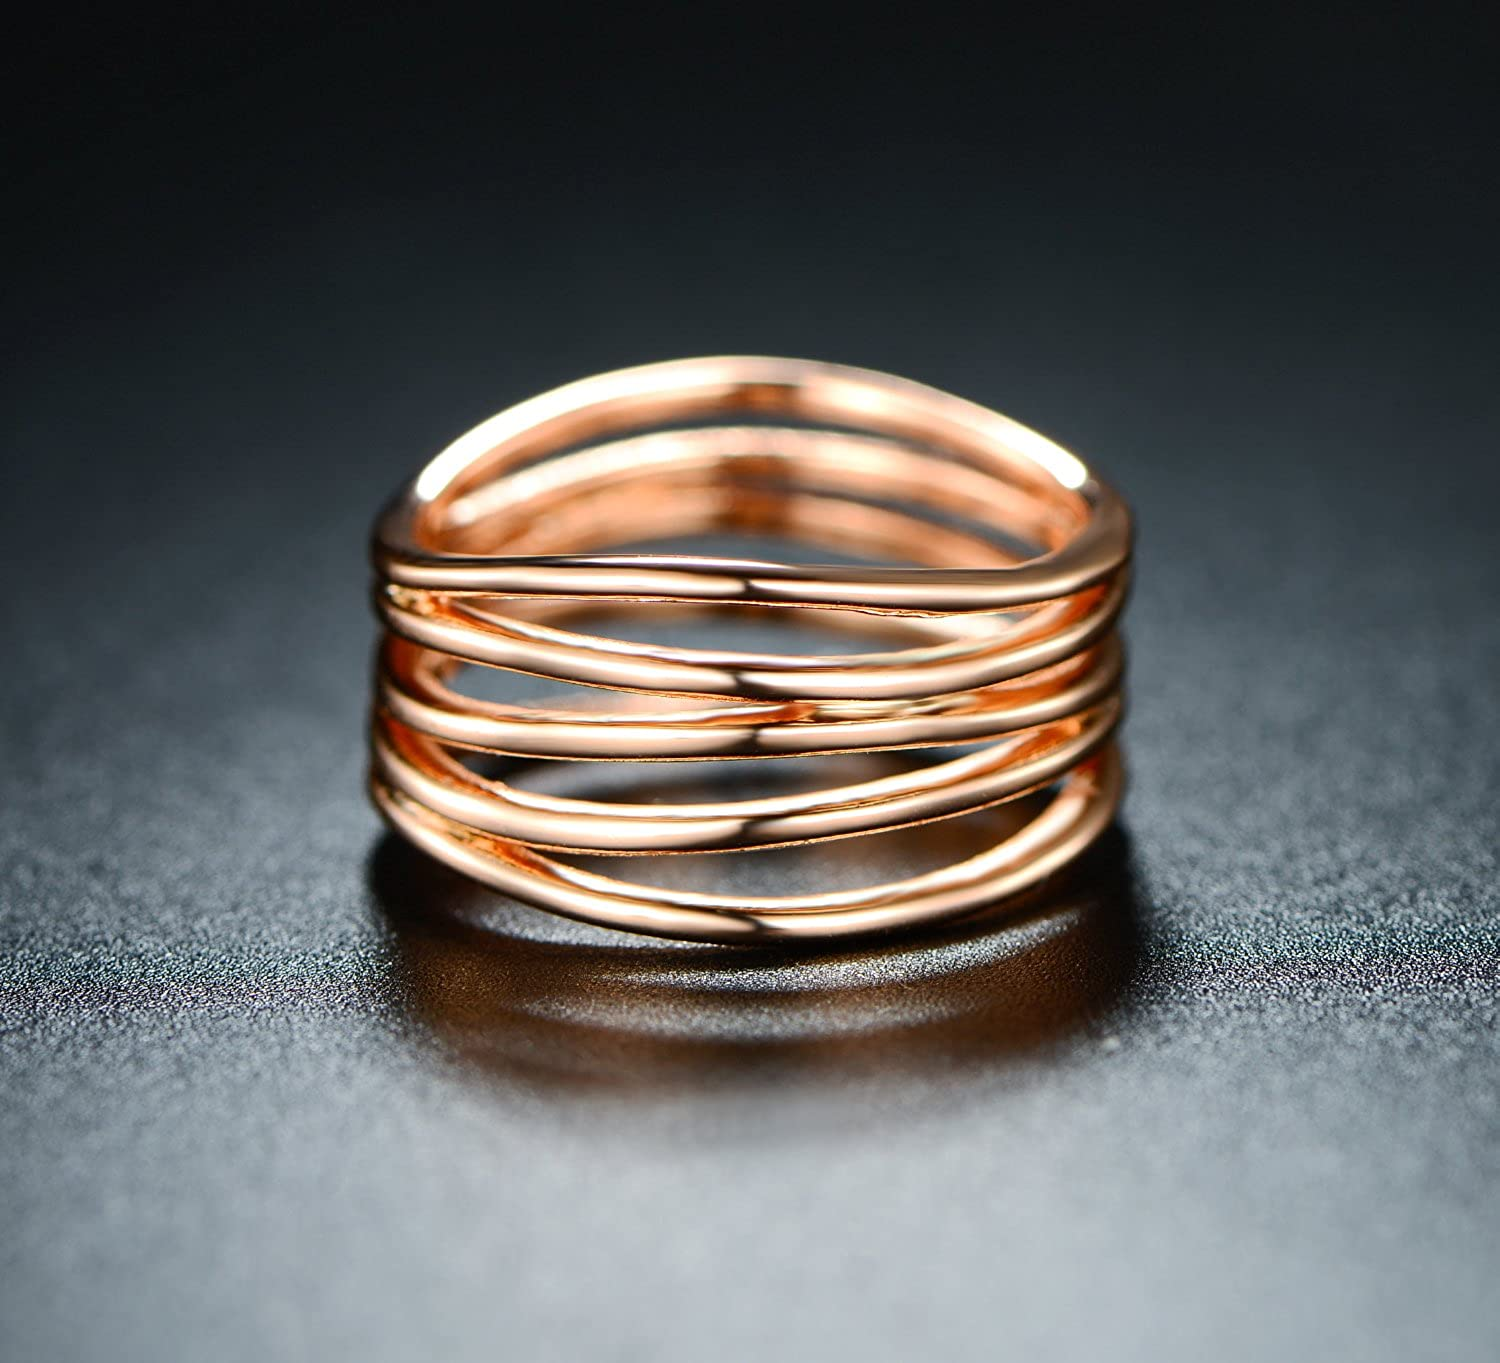 Barzel Gold Rose Gold /& White Gold Plated Statement Ring SGS INTERNATIONAL